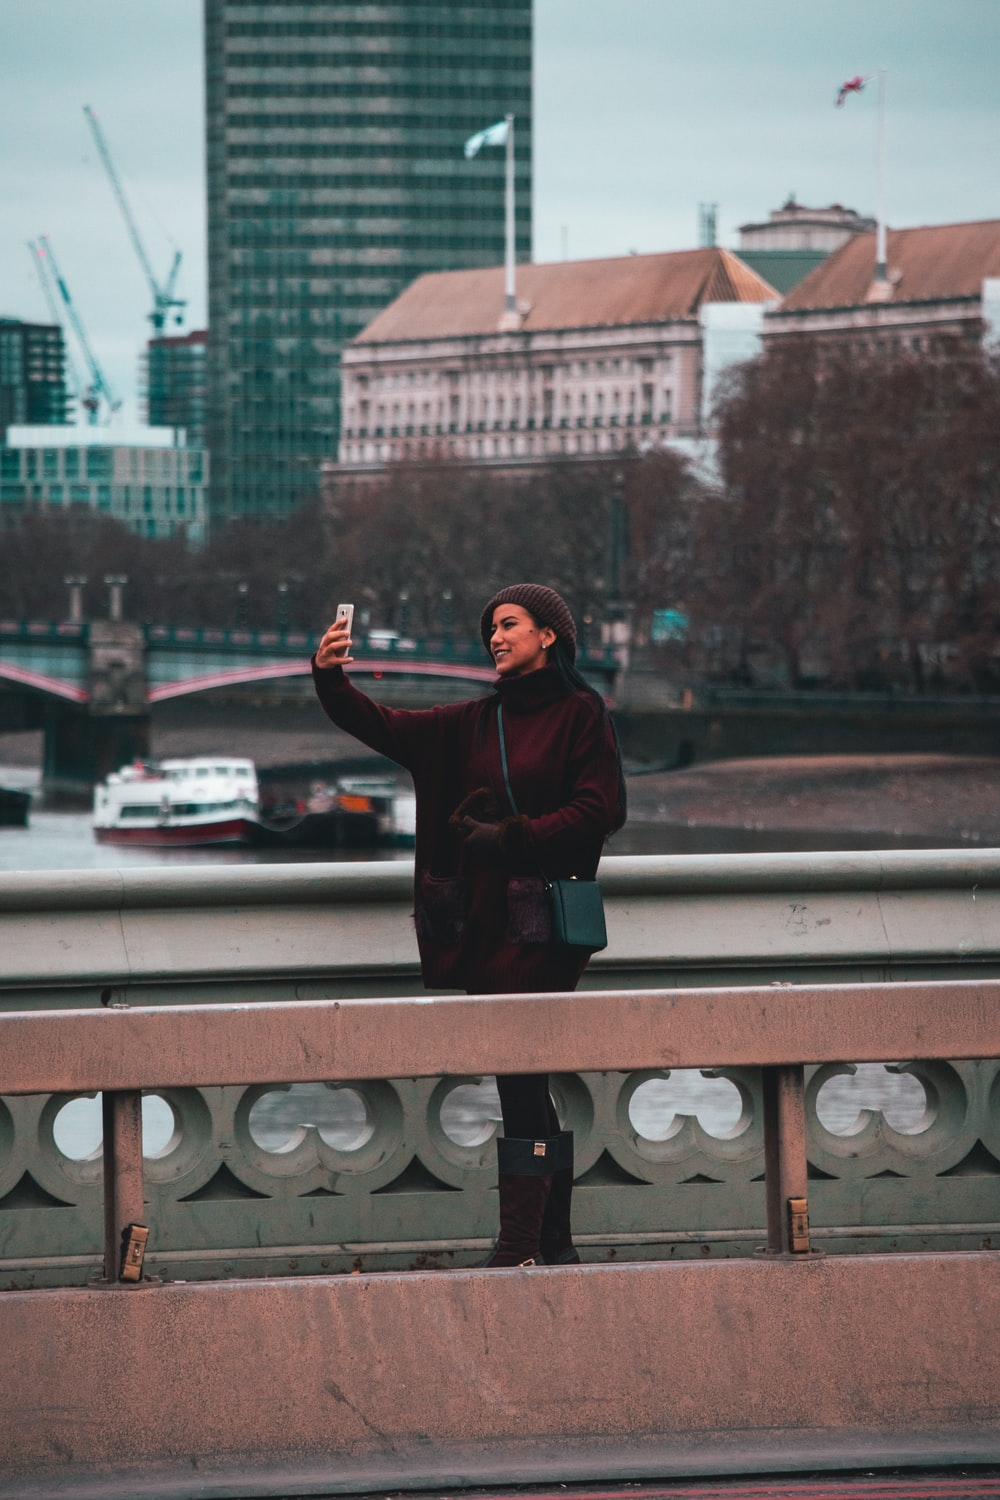 woman standing on bridge taking selfie